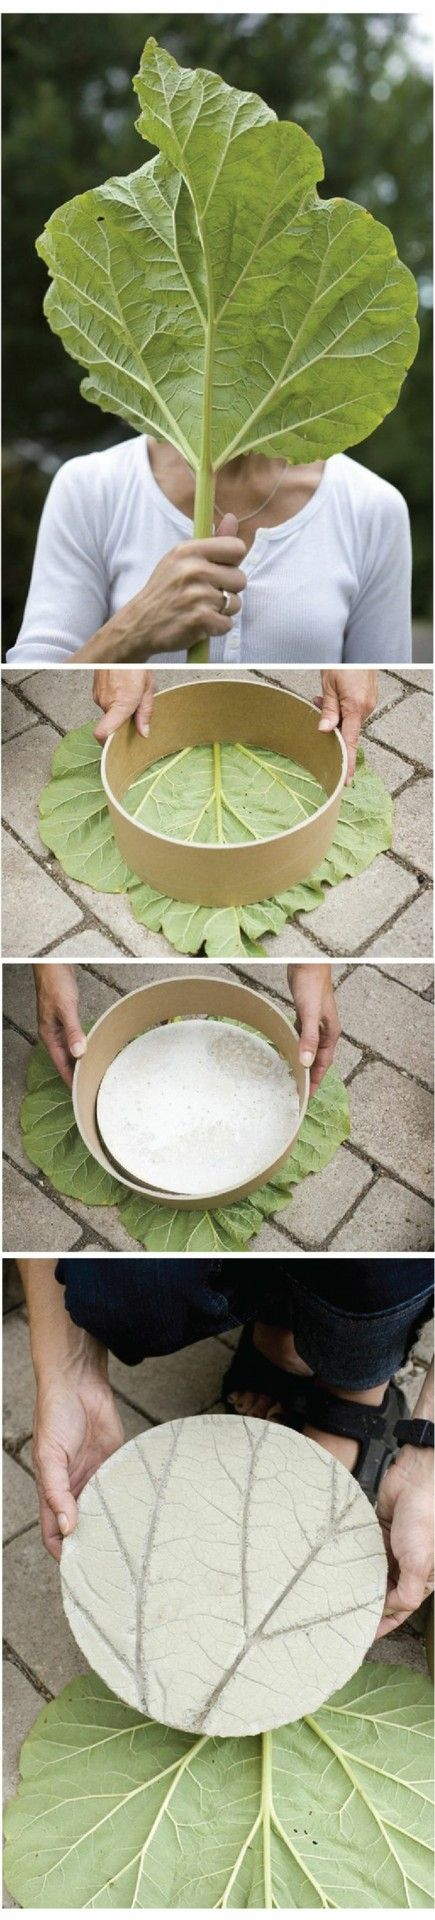 Steps to make a pretty concrete stepping stone, or tile.  1. Giant Leaf  2. Cardboard ring  3. Concrete  4. And finished :)